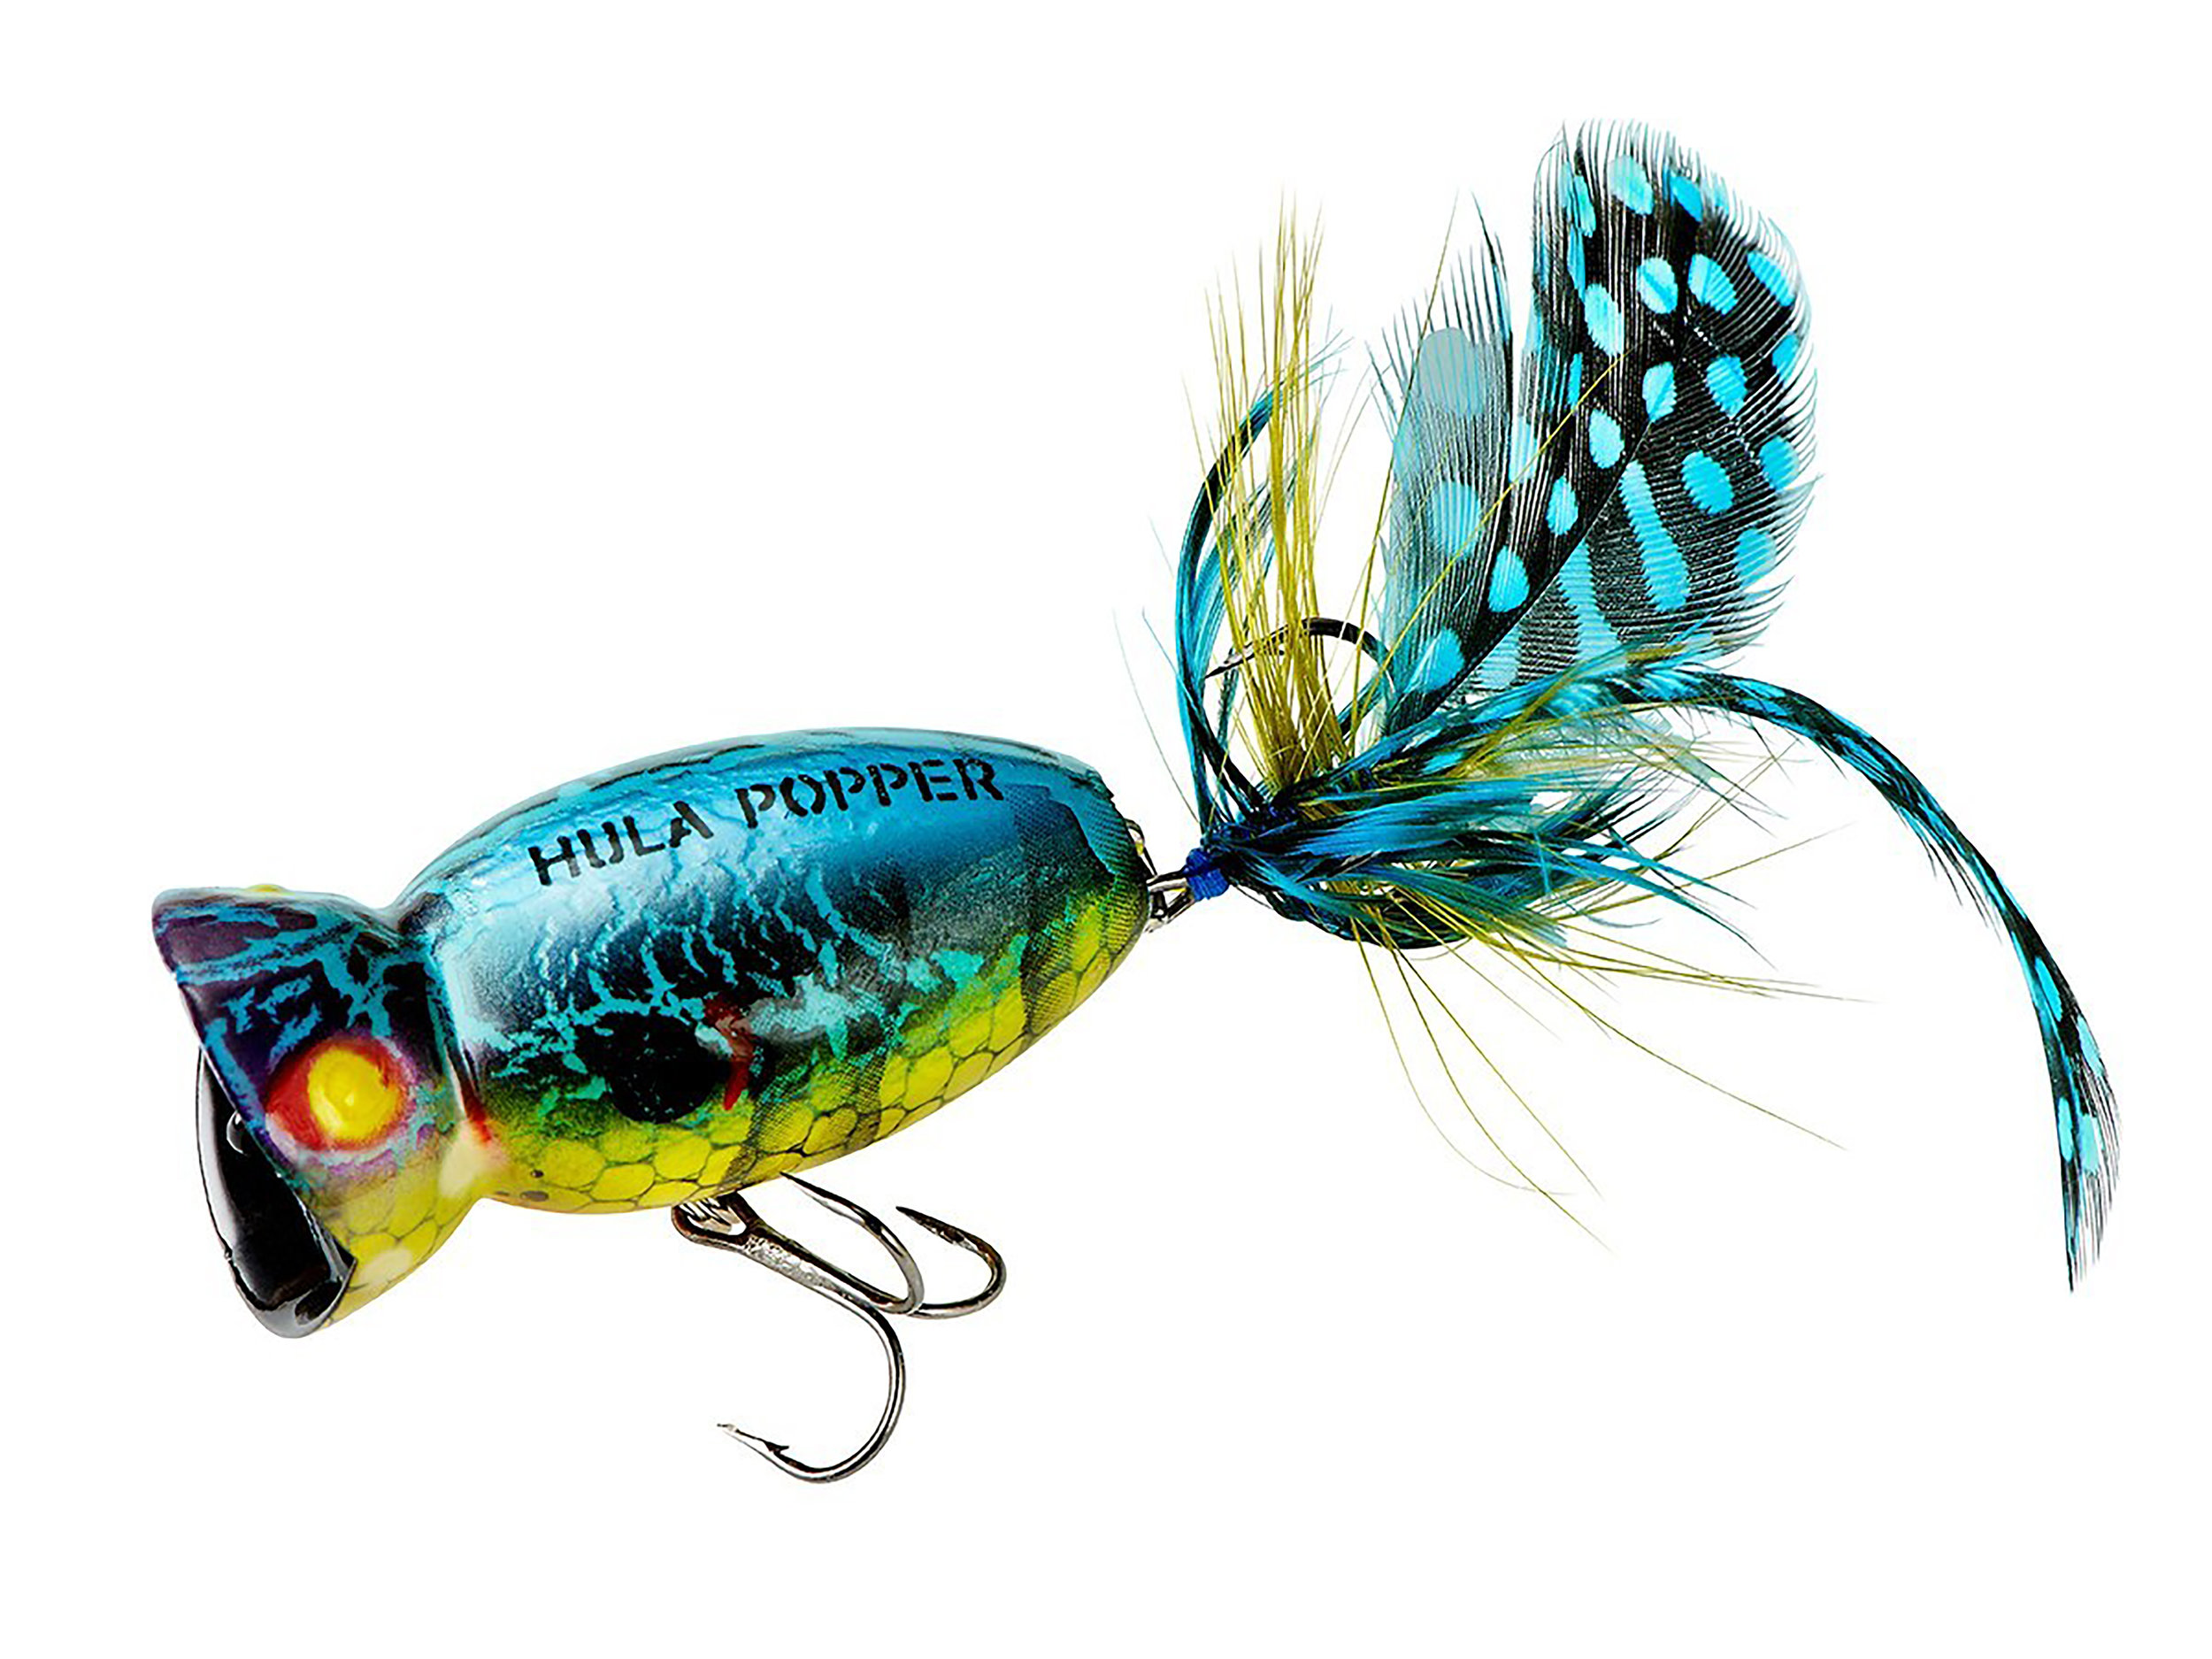 Booth 4831. Hula Popper 2.0. Based on the classic shape as the original 1948 model, the Hula Popper 2.0 leads the fleet of Arbogast baits into the future. The bait features all new colors, hardware and feathers.